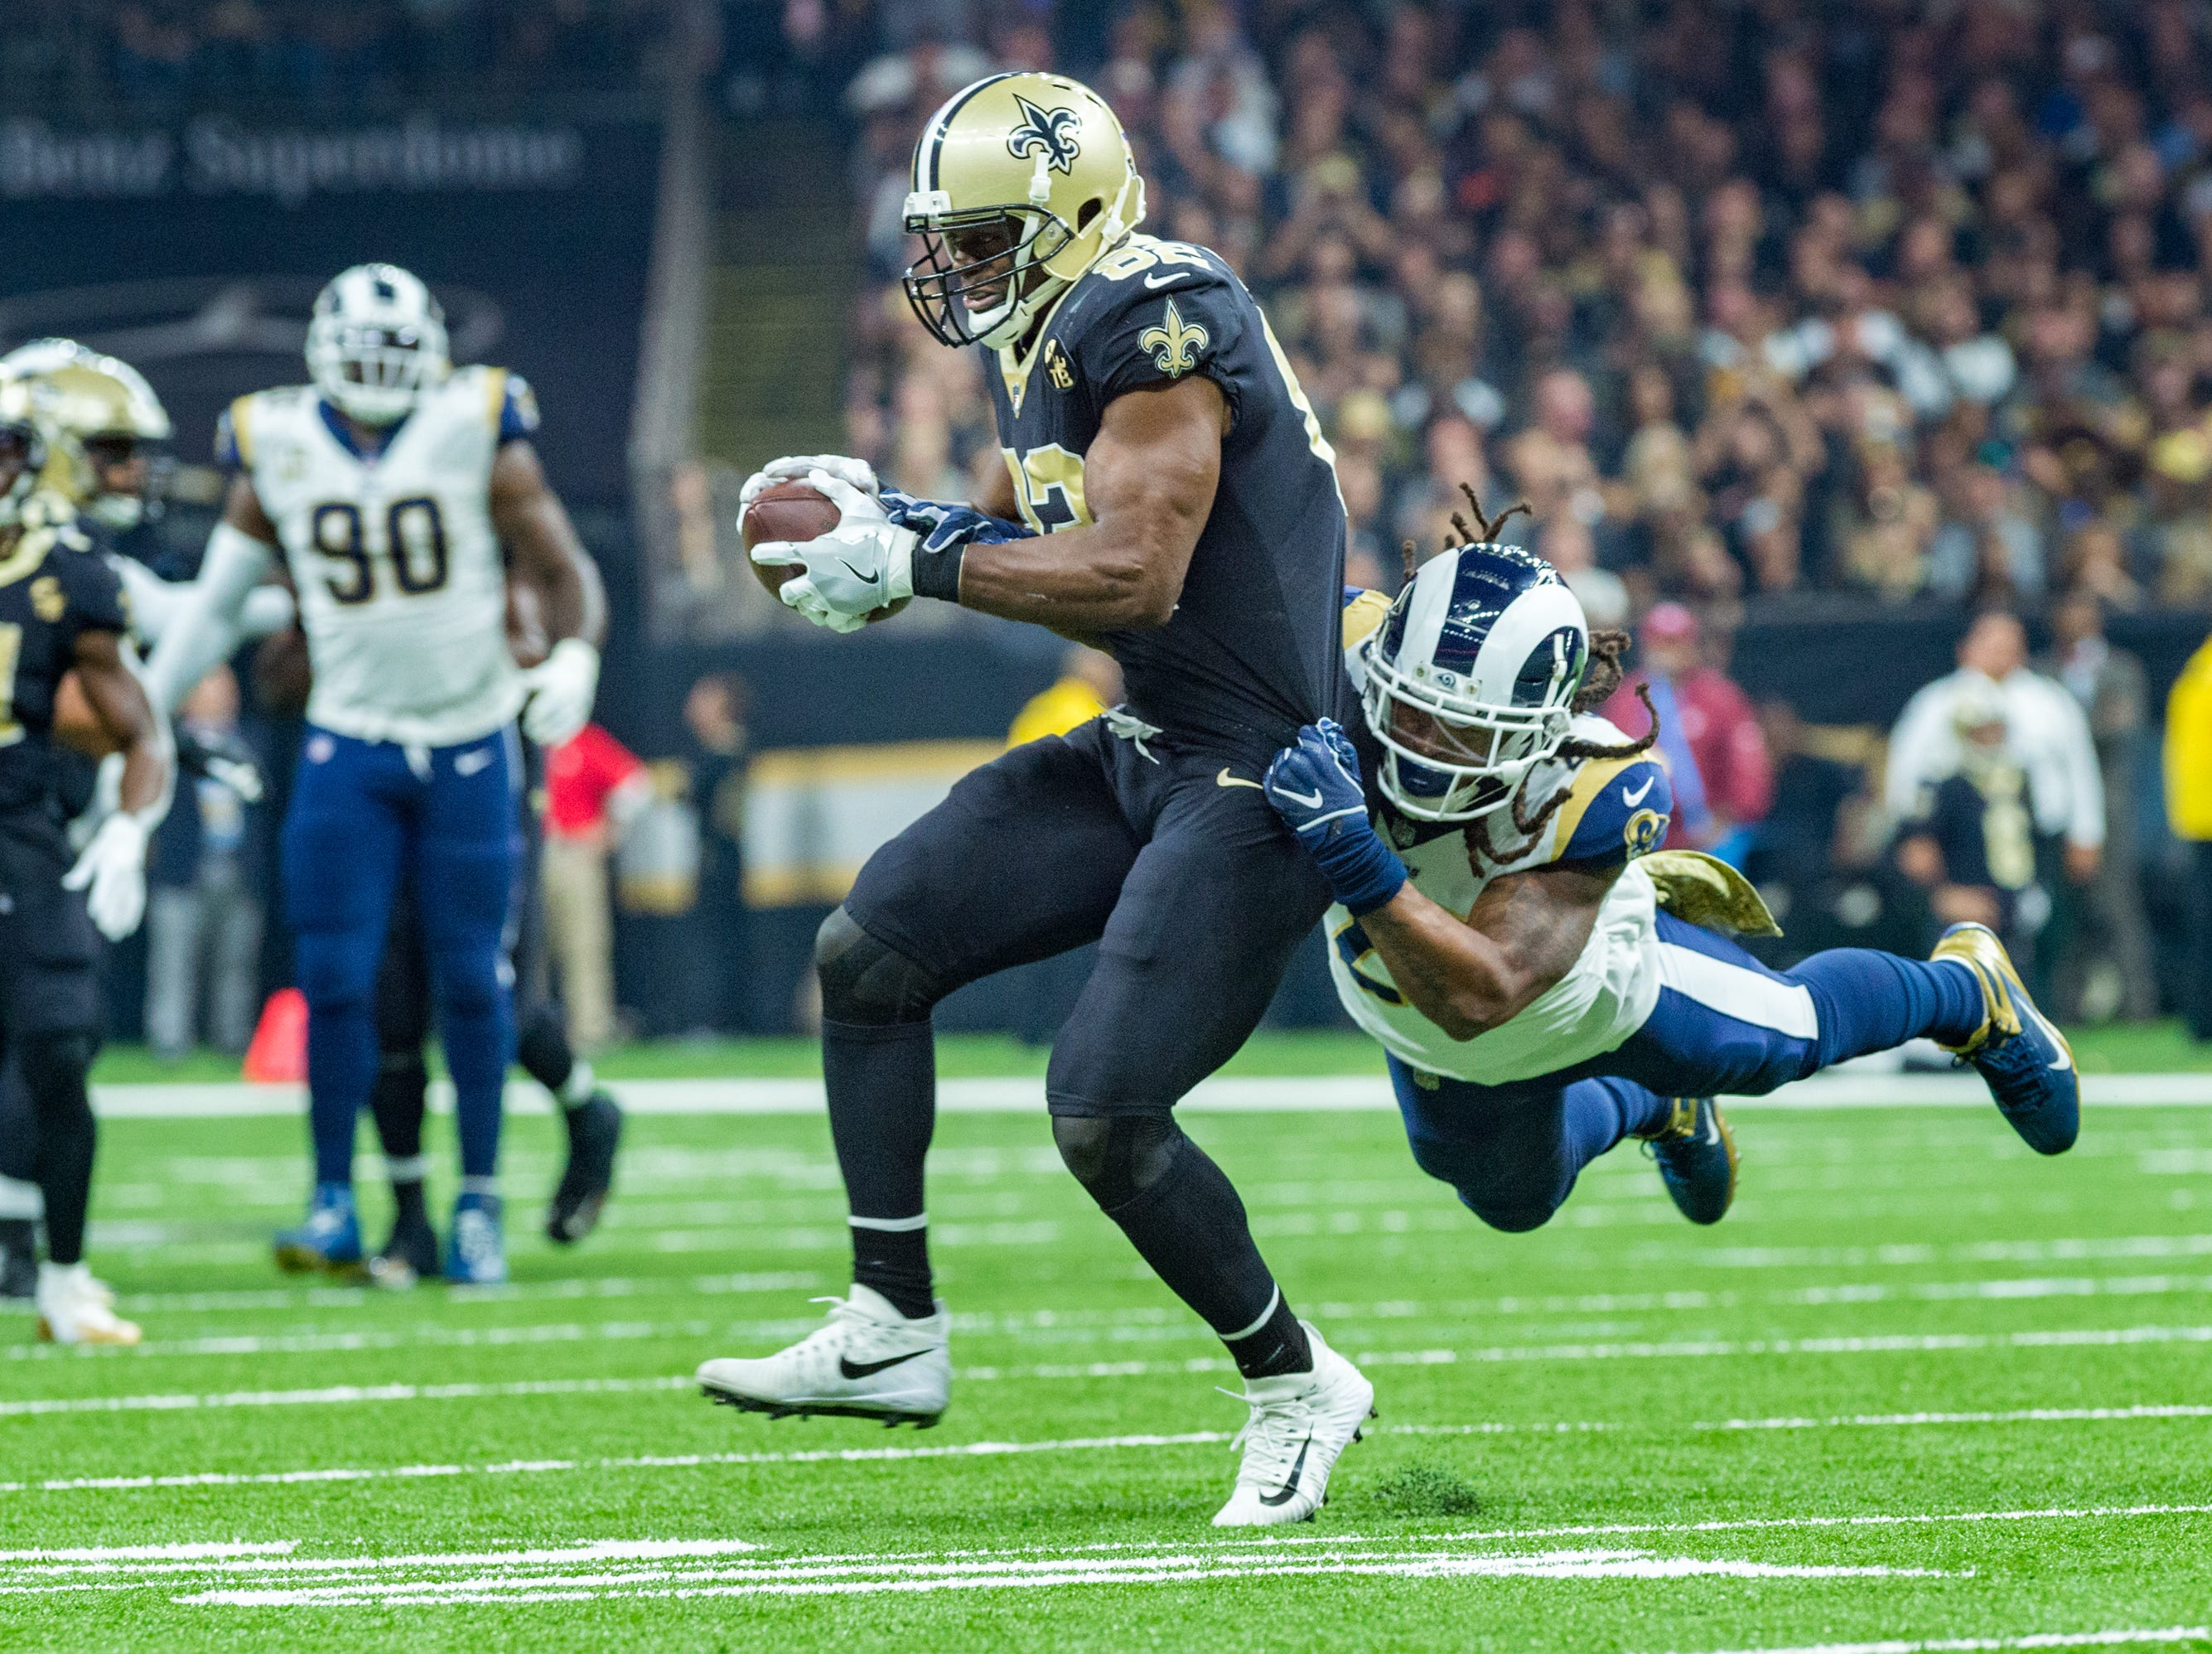 Saints runningback Mark Ingram II makes a catch and runs the ball during the NFL football game between the New Orleans Saints and the Los Angeles Rams on Sunday, Nov. 4, 2018.